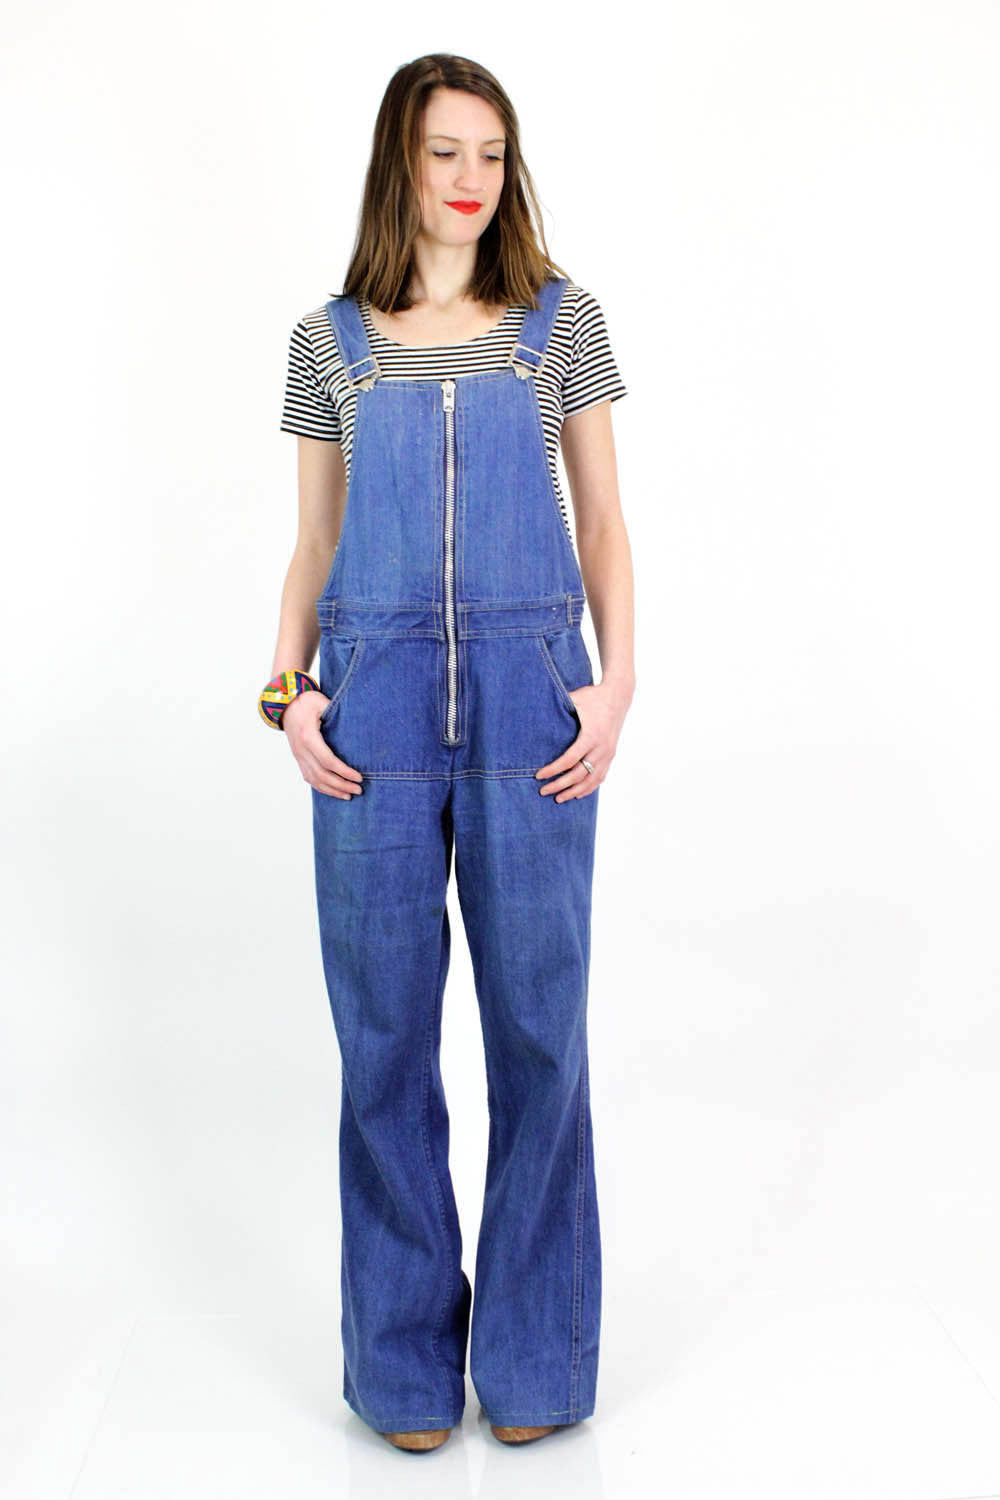 70s Chess King Denim Overalls M